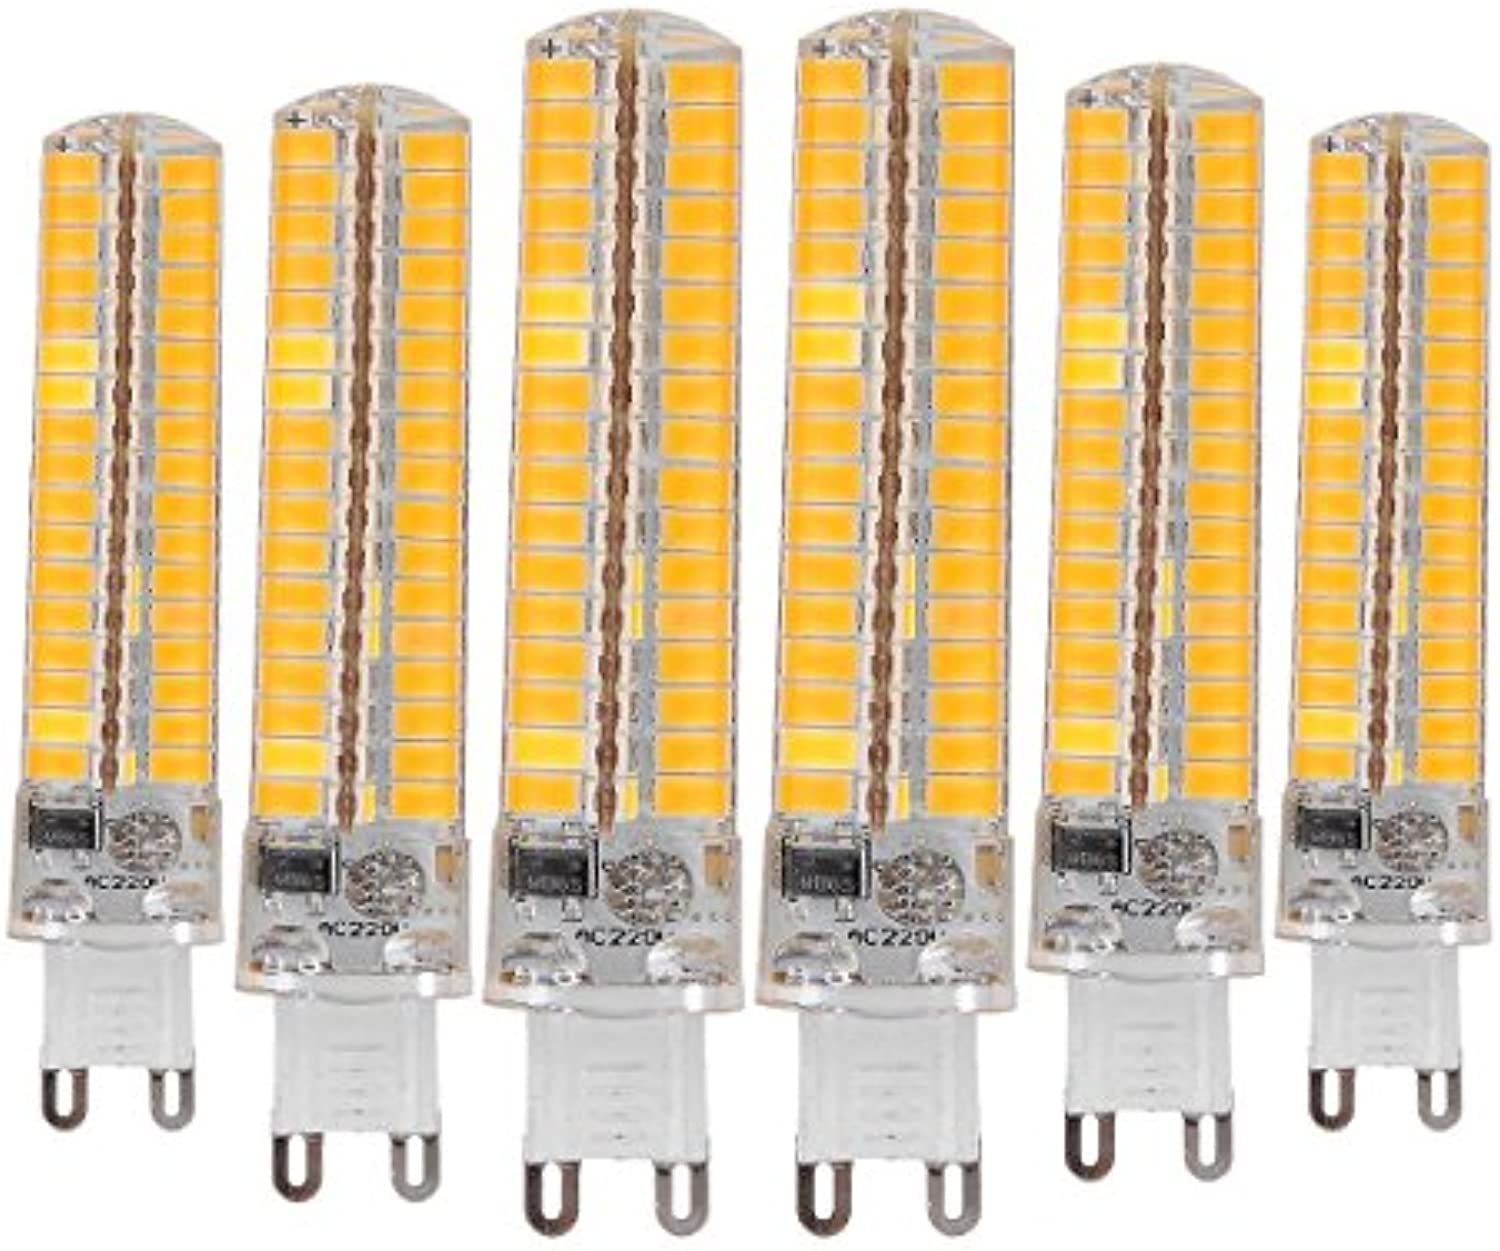 BMY Startseite Led-Lampen, Dimmable G9 10W 136LED 5730 SMD 900-1000 LM Warmwei Cool Weiß Silikonlampe LED Maisbirnen AC 220-240V (6PCS) Leuchtmittel (Gre  warmwei)